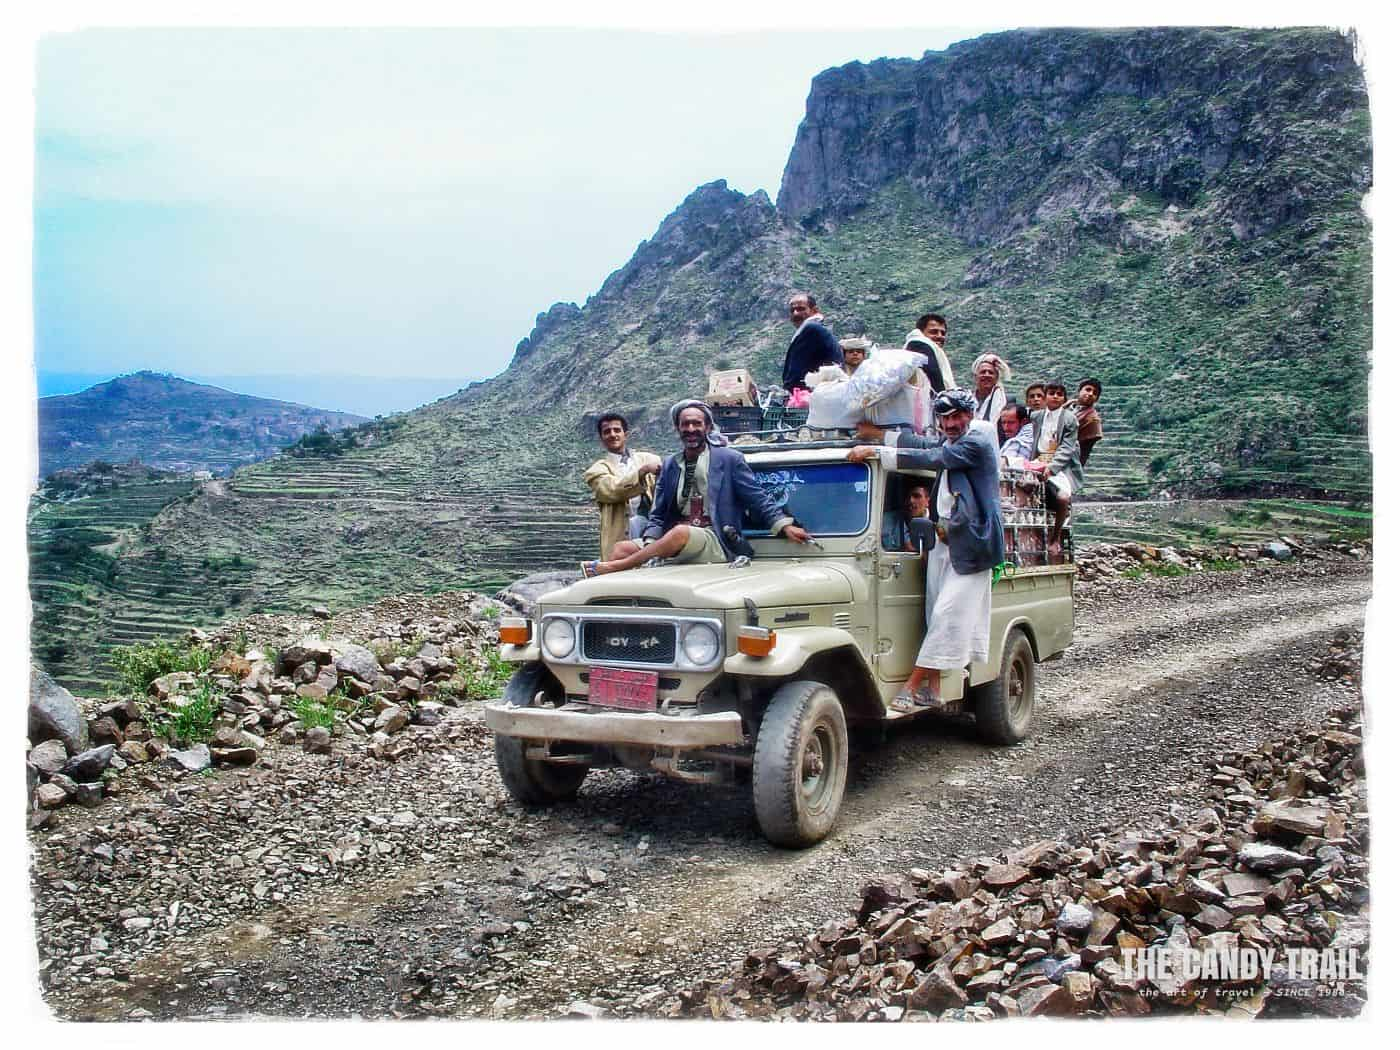 Transport on route from Manakhah market day, Yemen